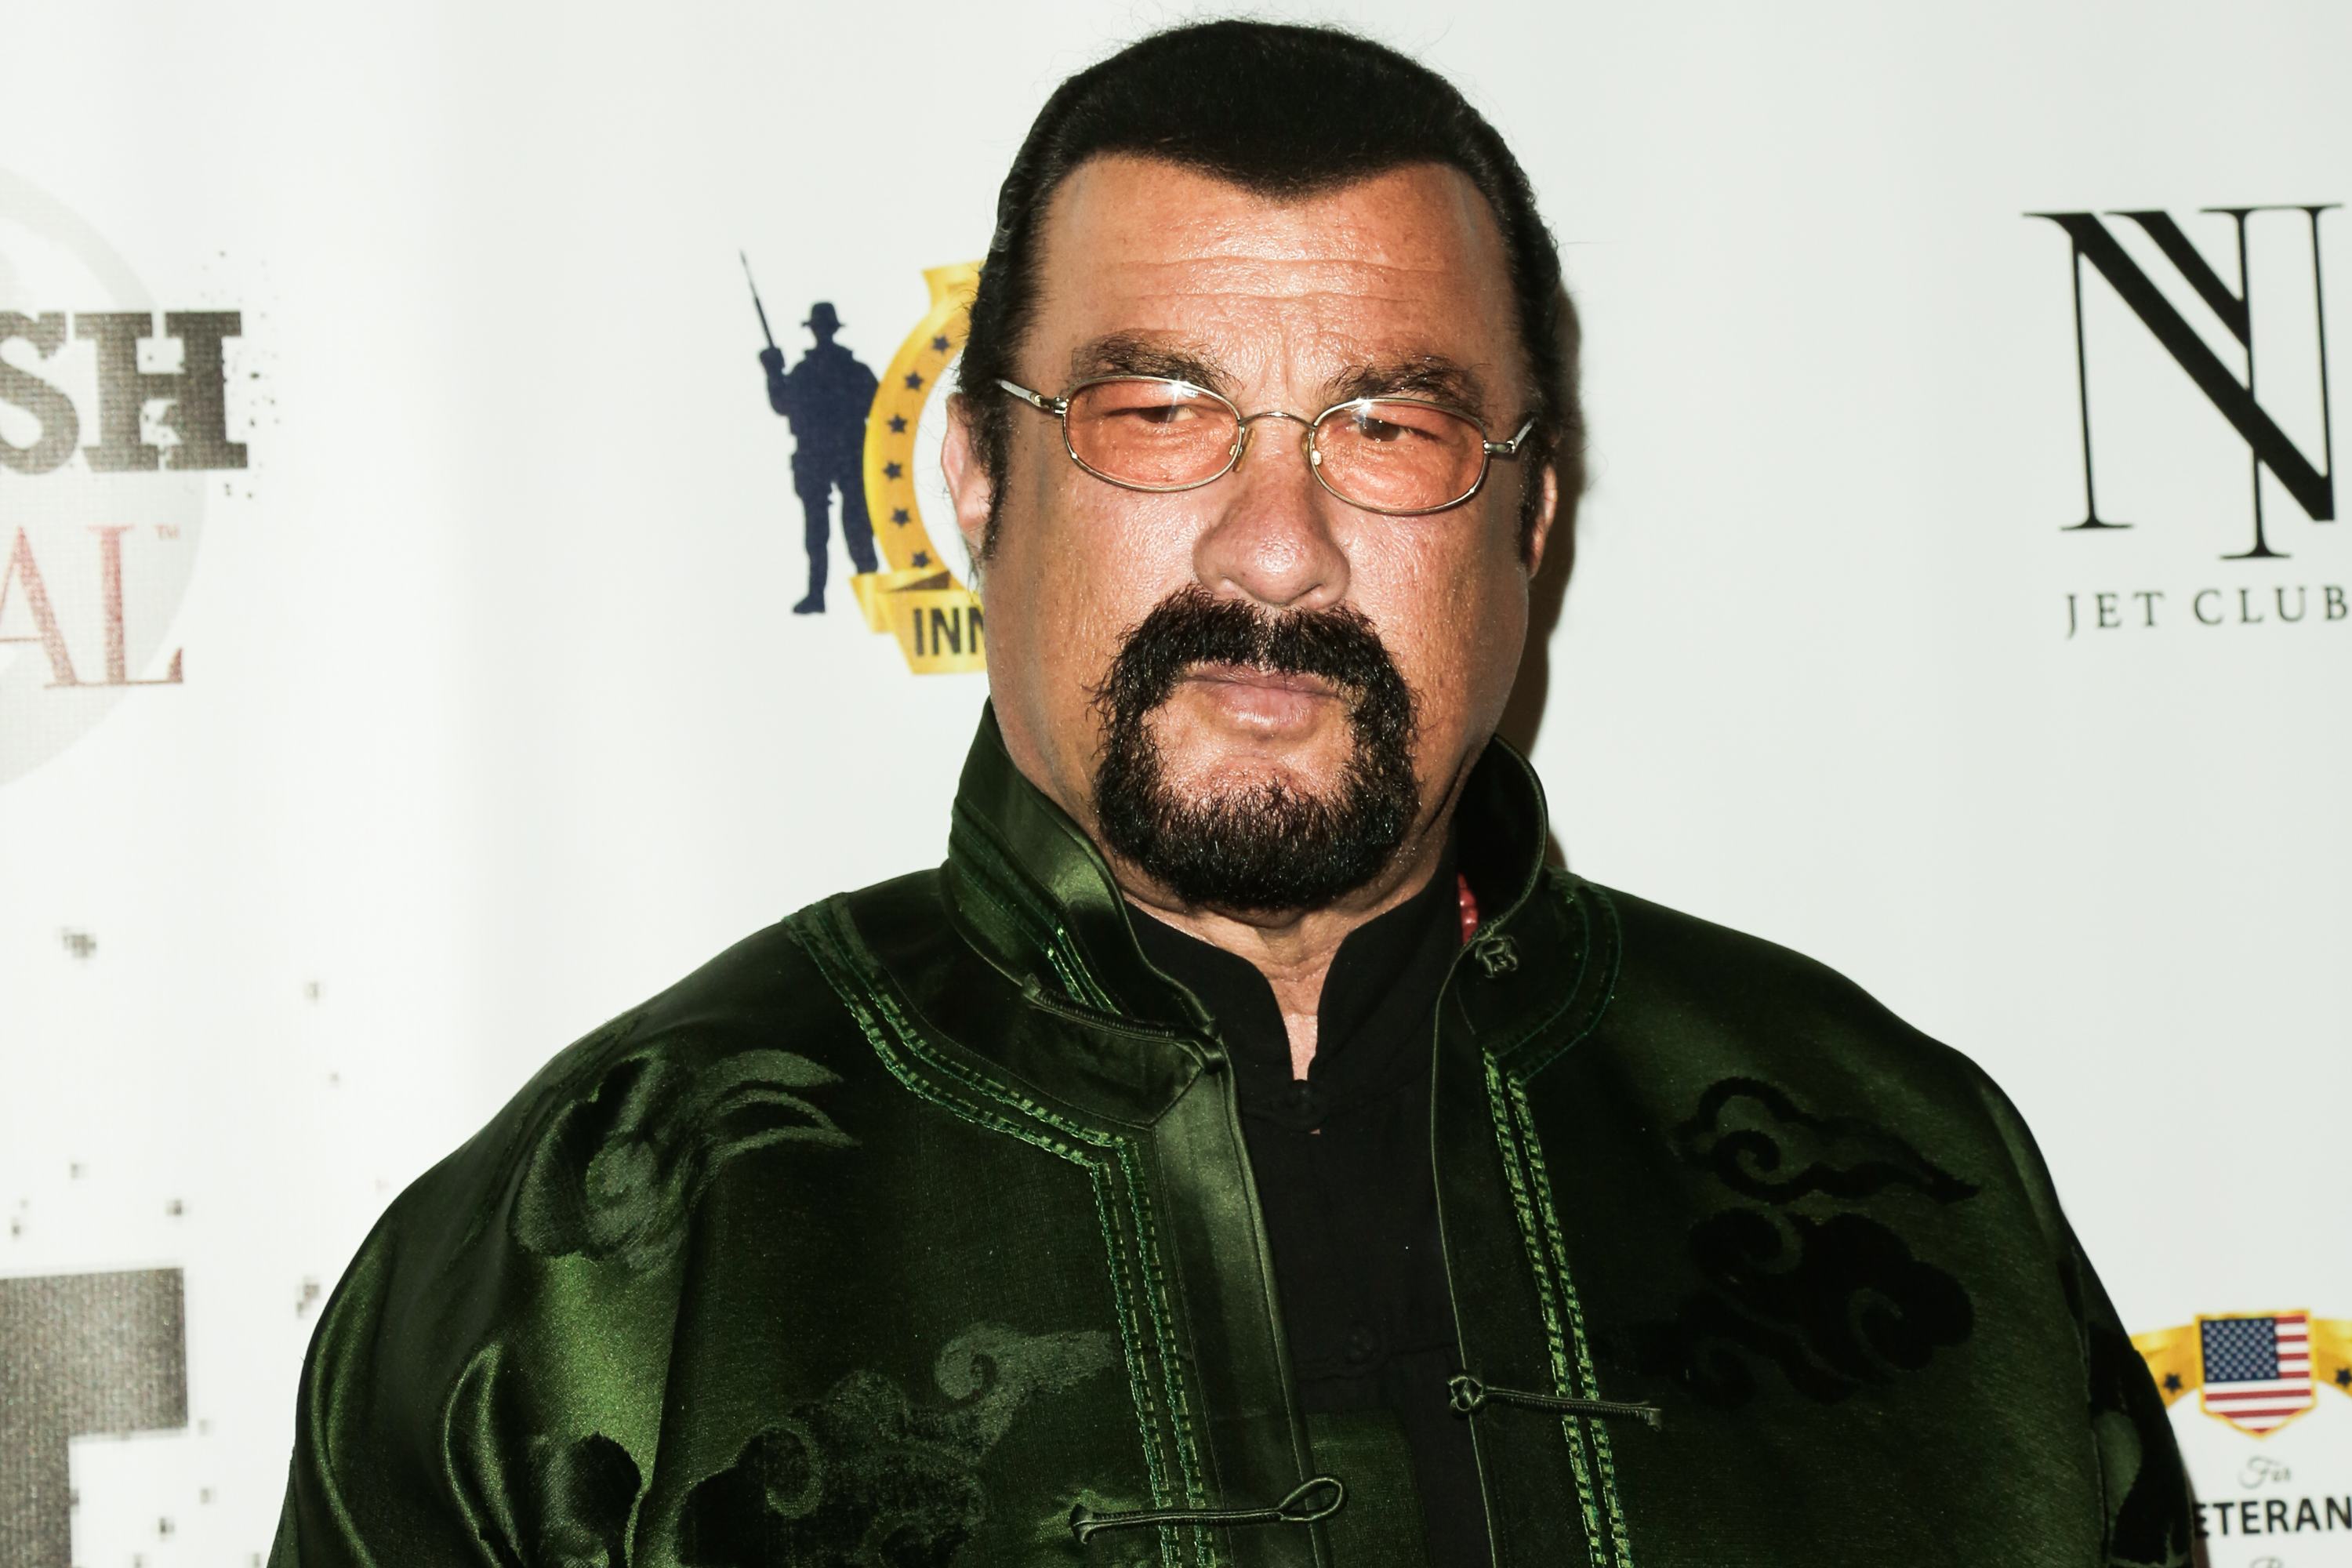 Steven Seagal in Los Angeles, Feb. 23, 2017.